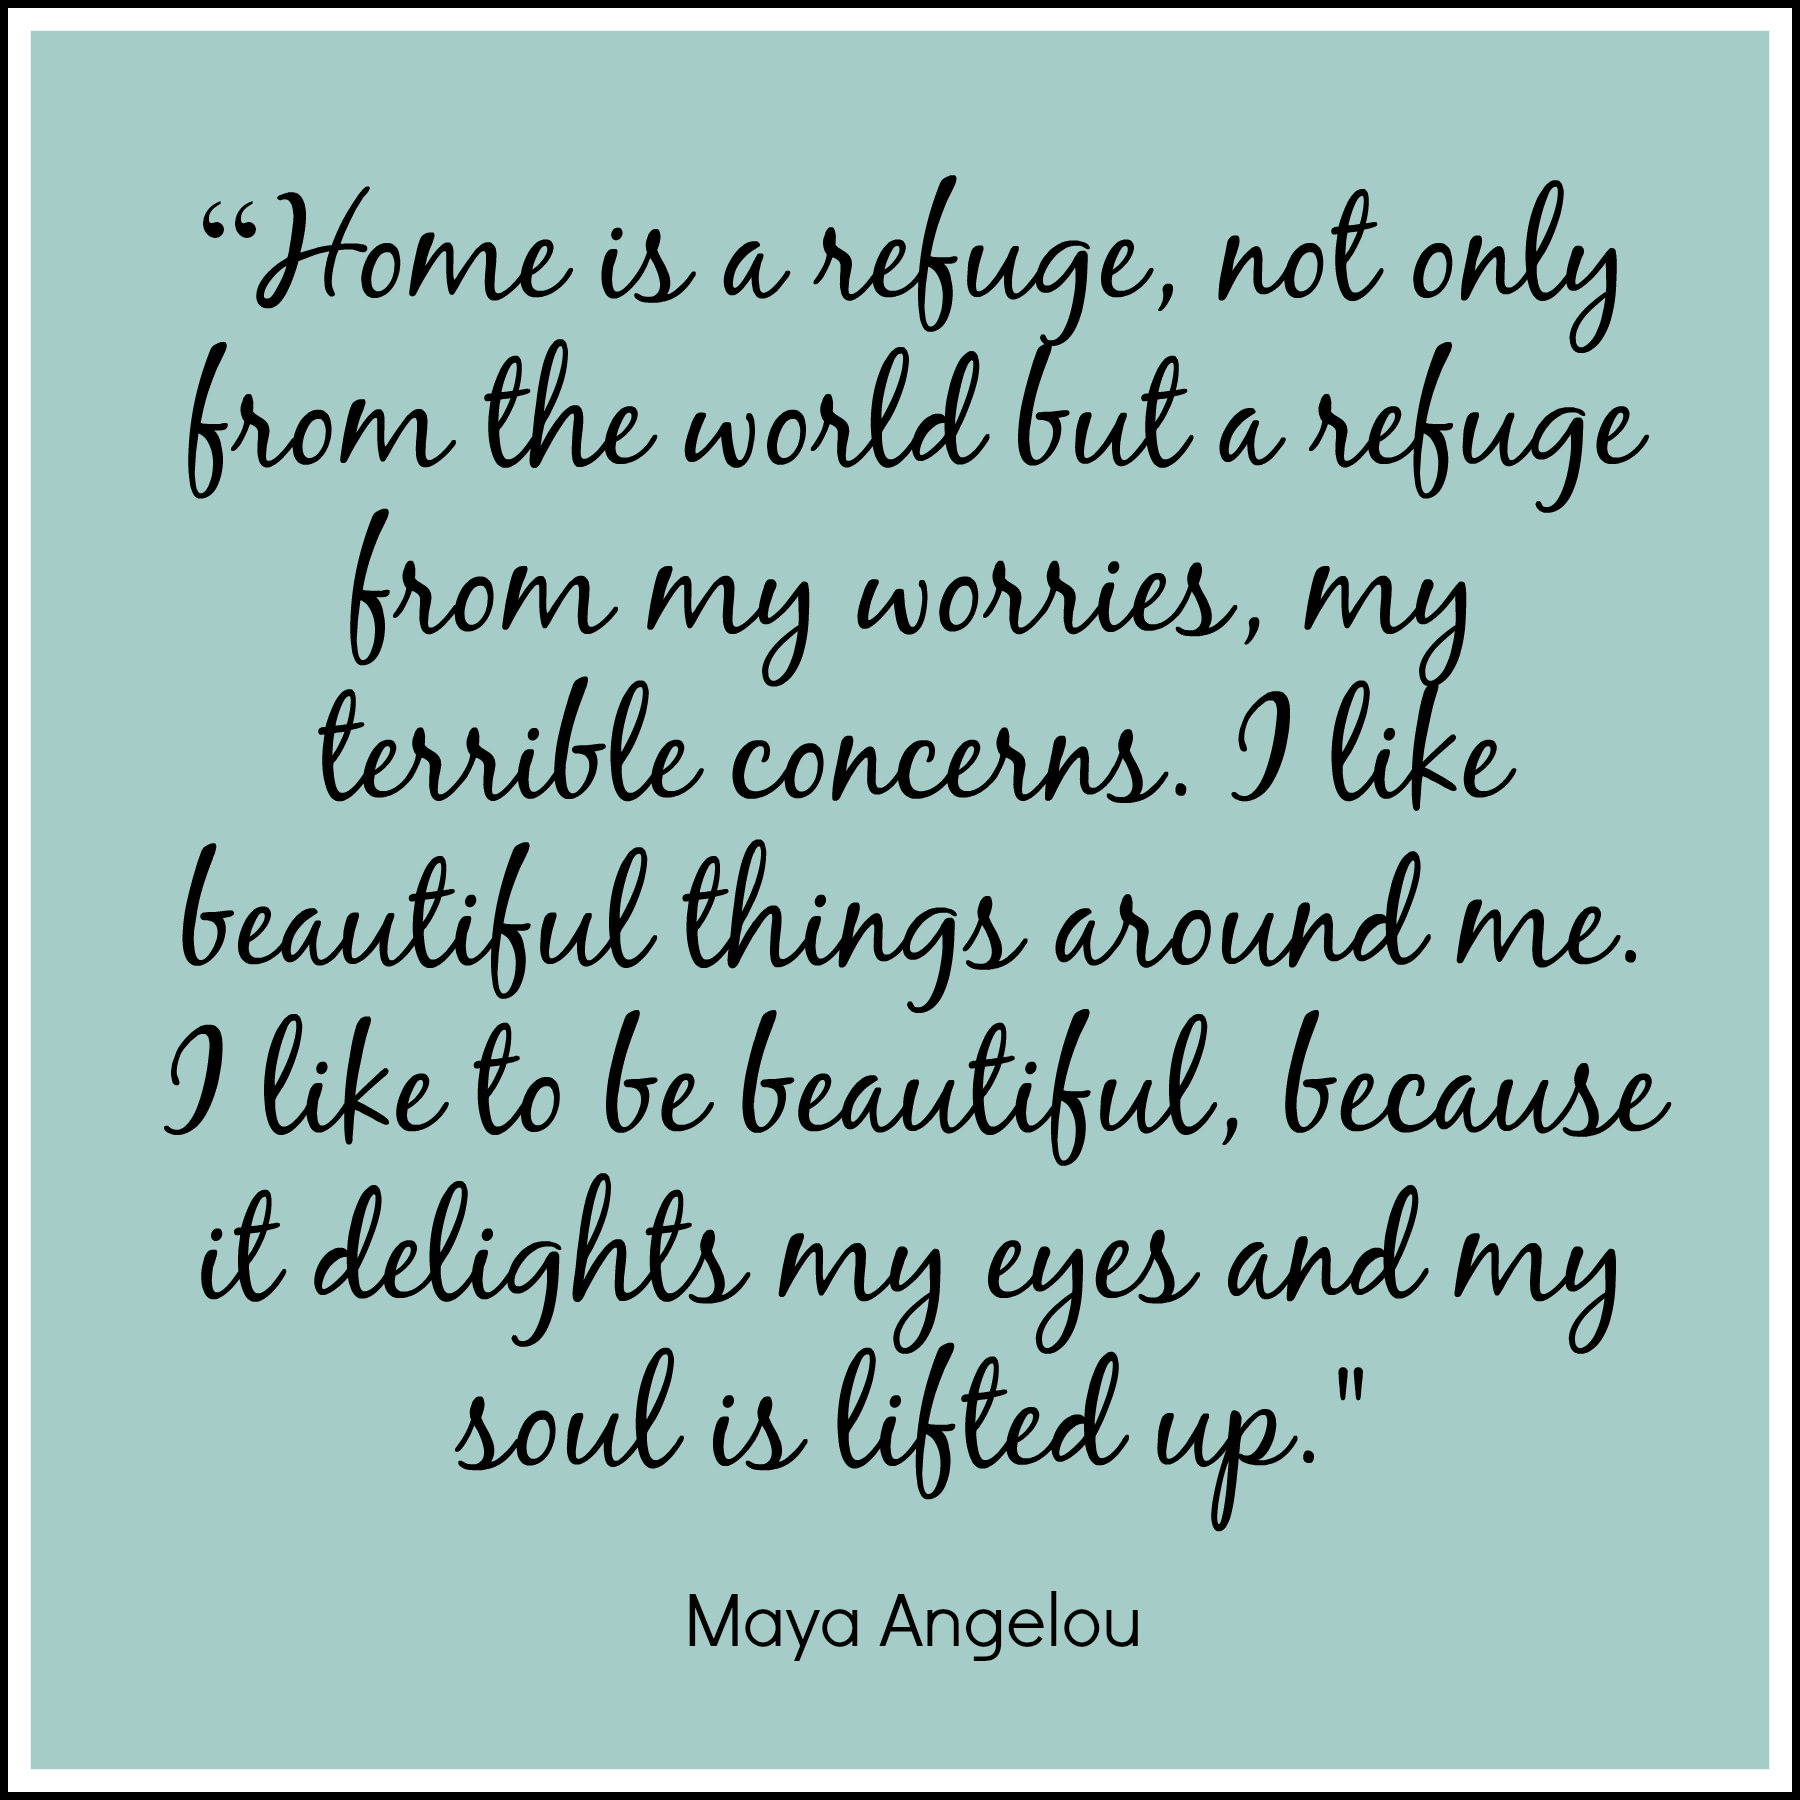 Maya Angelou Quotes About Friendship Amazing Quotes About Friendshipmaya Angelou Maya Angelou Poems And